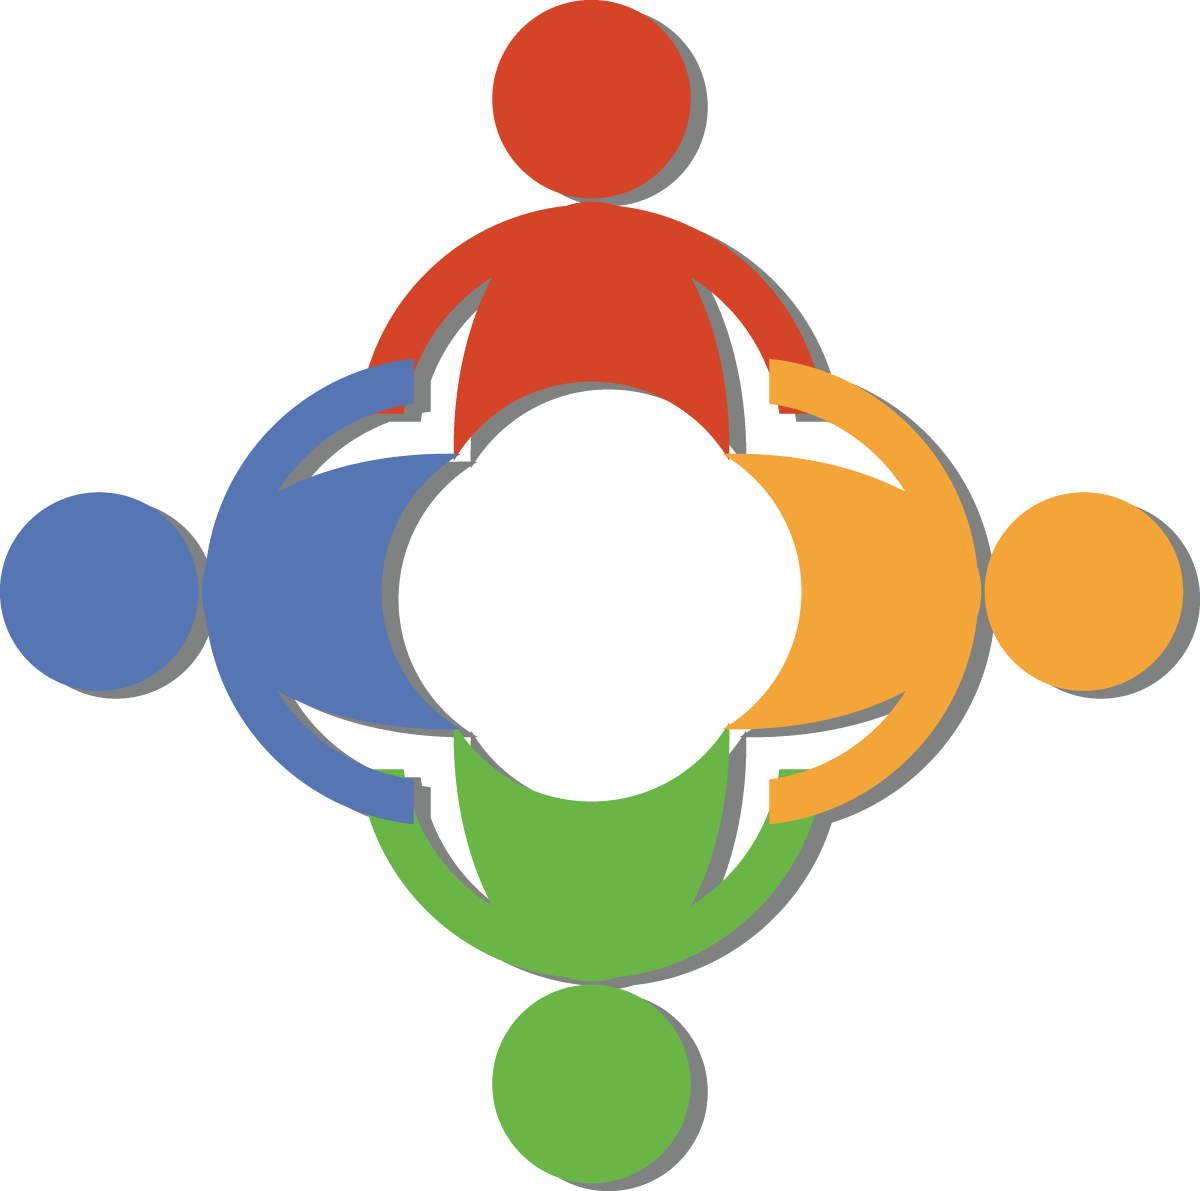 1200x1191 Free Teamwork Clip Art Of A Circle Of Diverse People Holding Hands